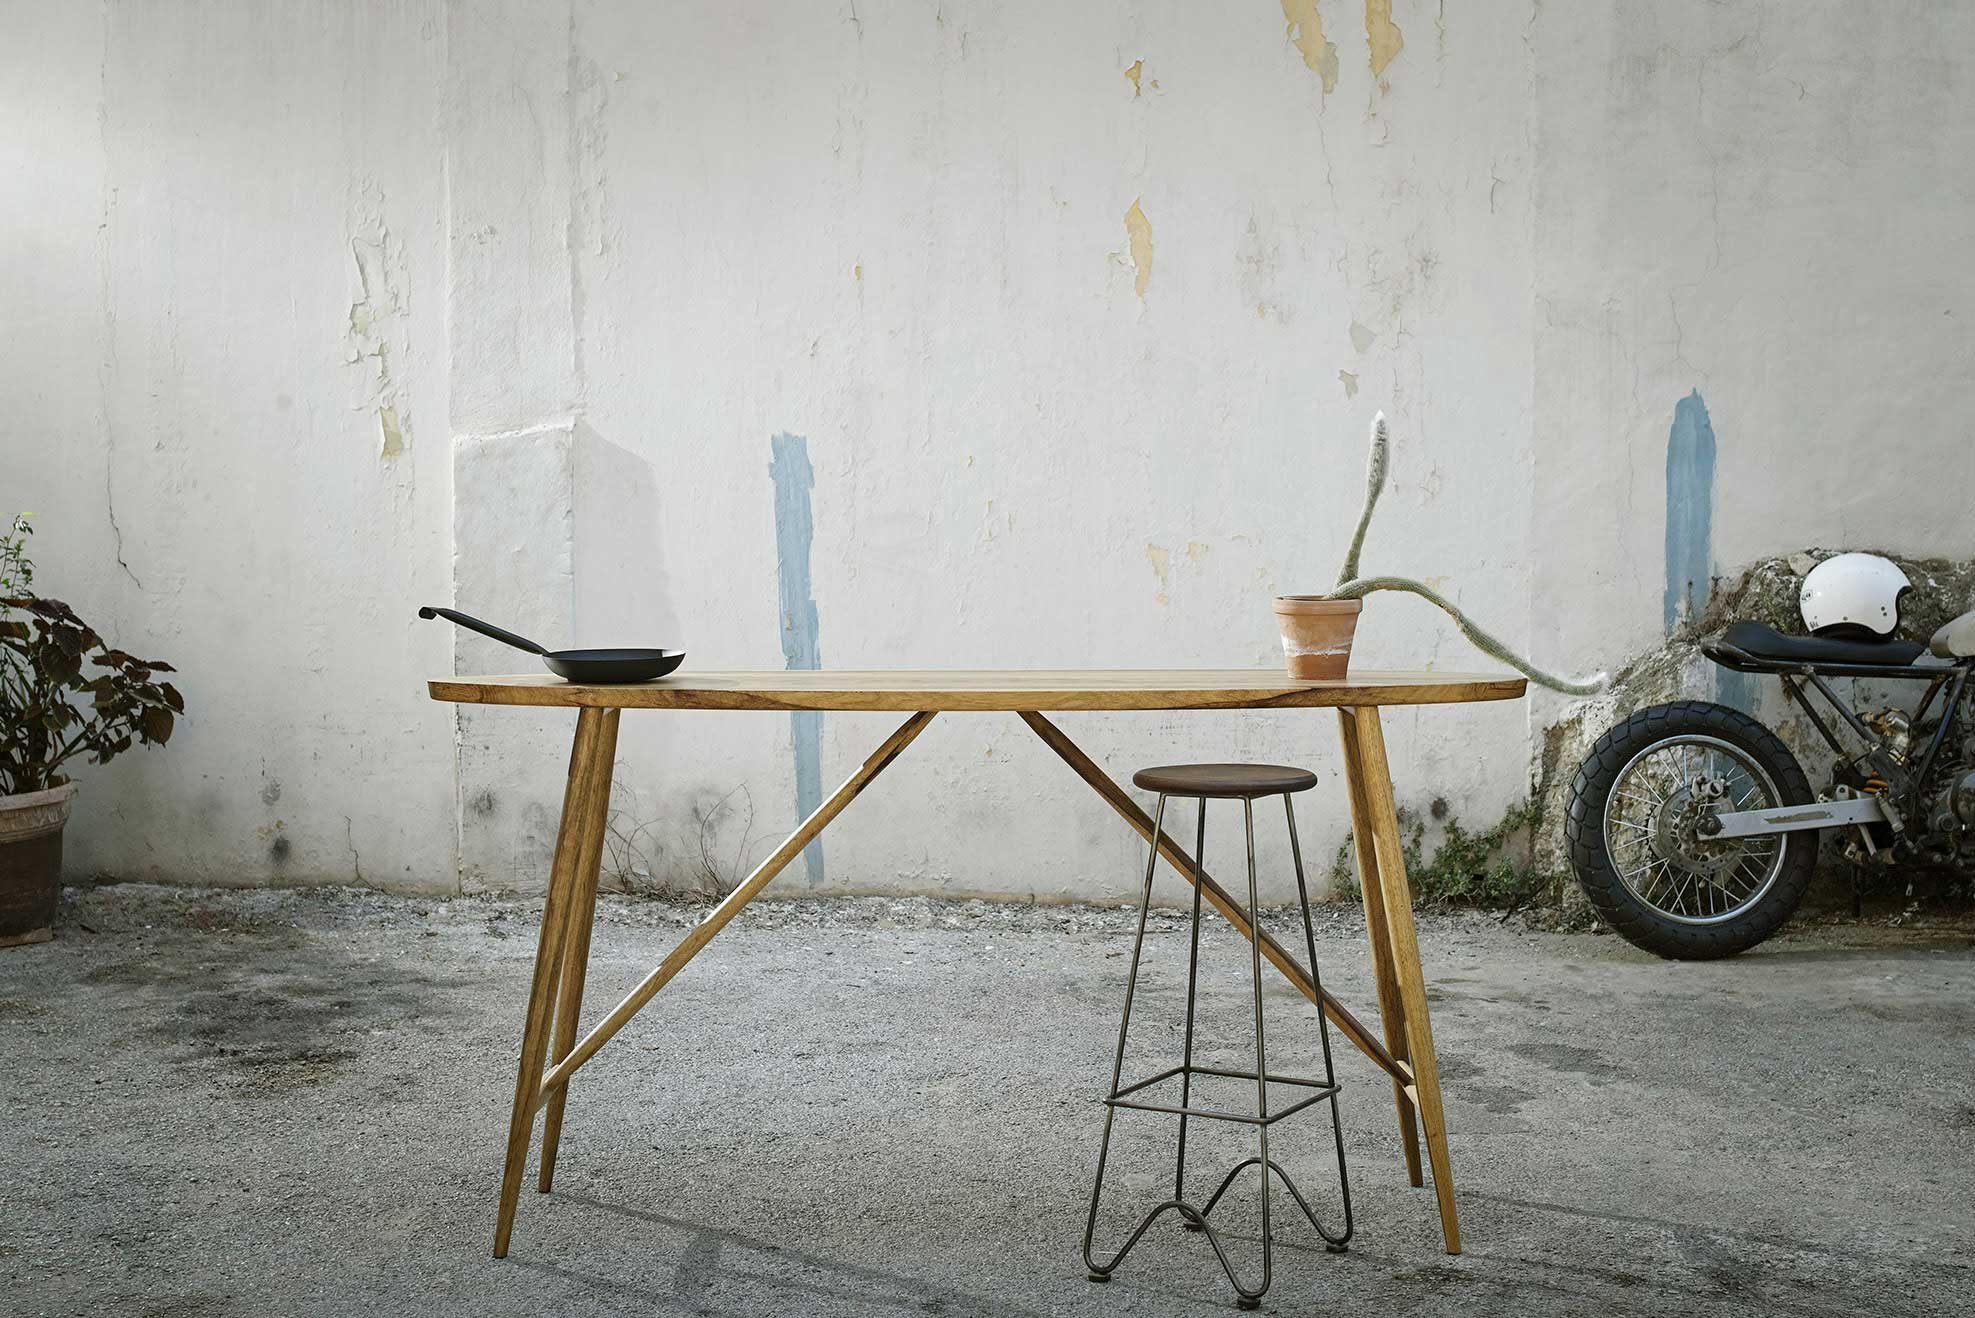 metal-and-wood-table-surf-console-hand-turned-lookbook.jpg